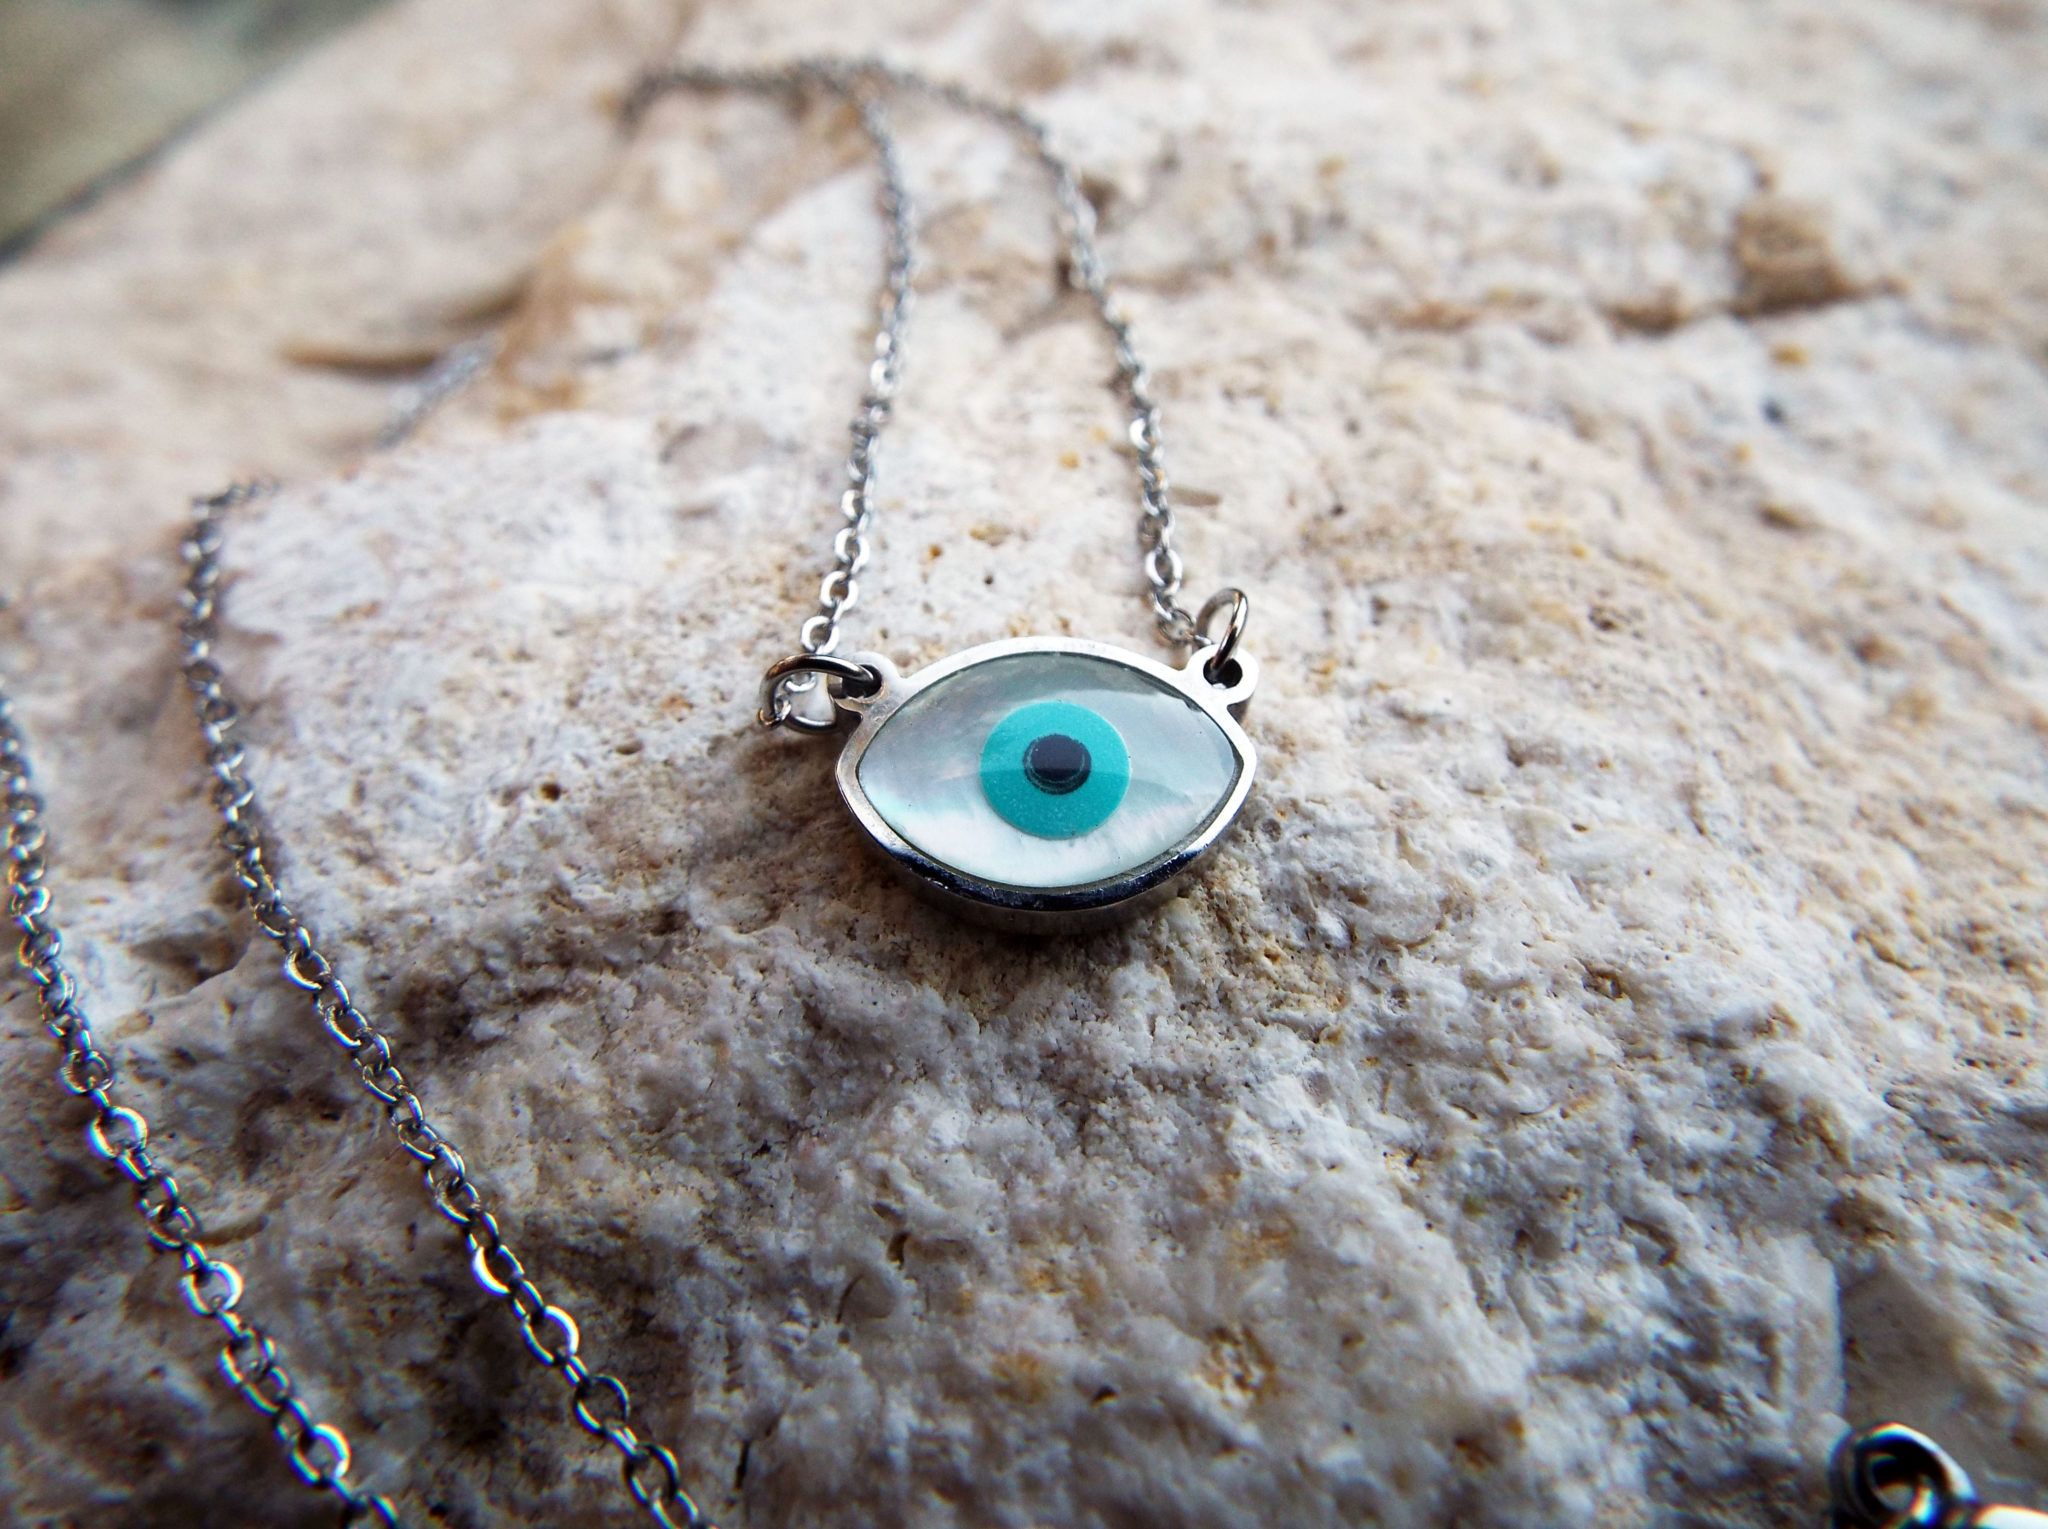 pendant sapphire jewelry silver pfs evileye luck necklace evil good bling blue eye colored cz